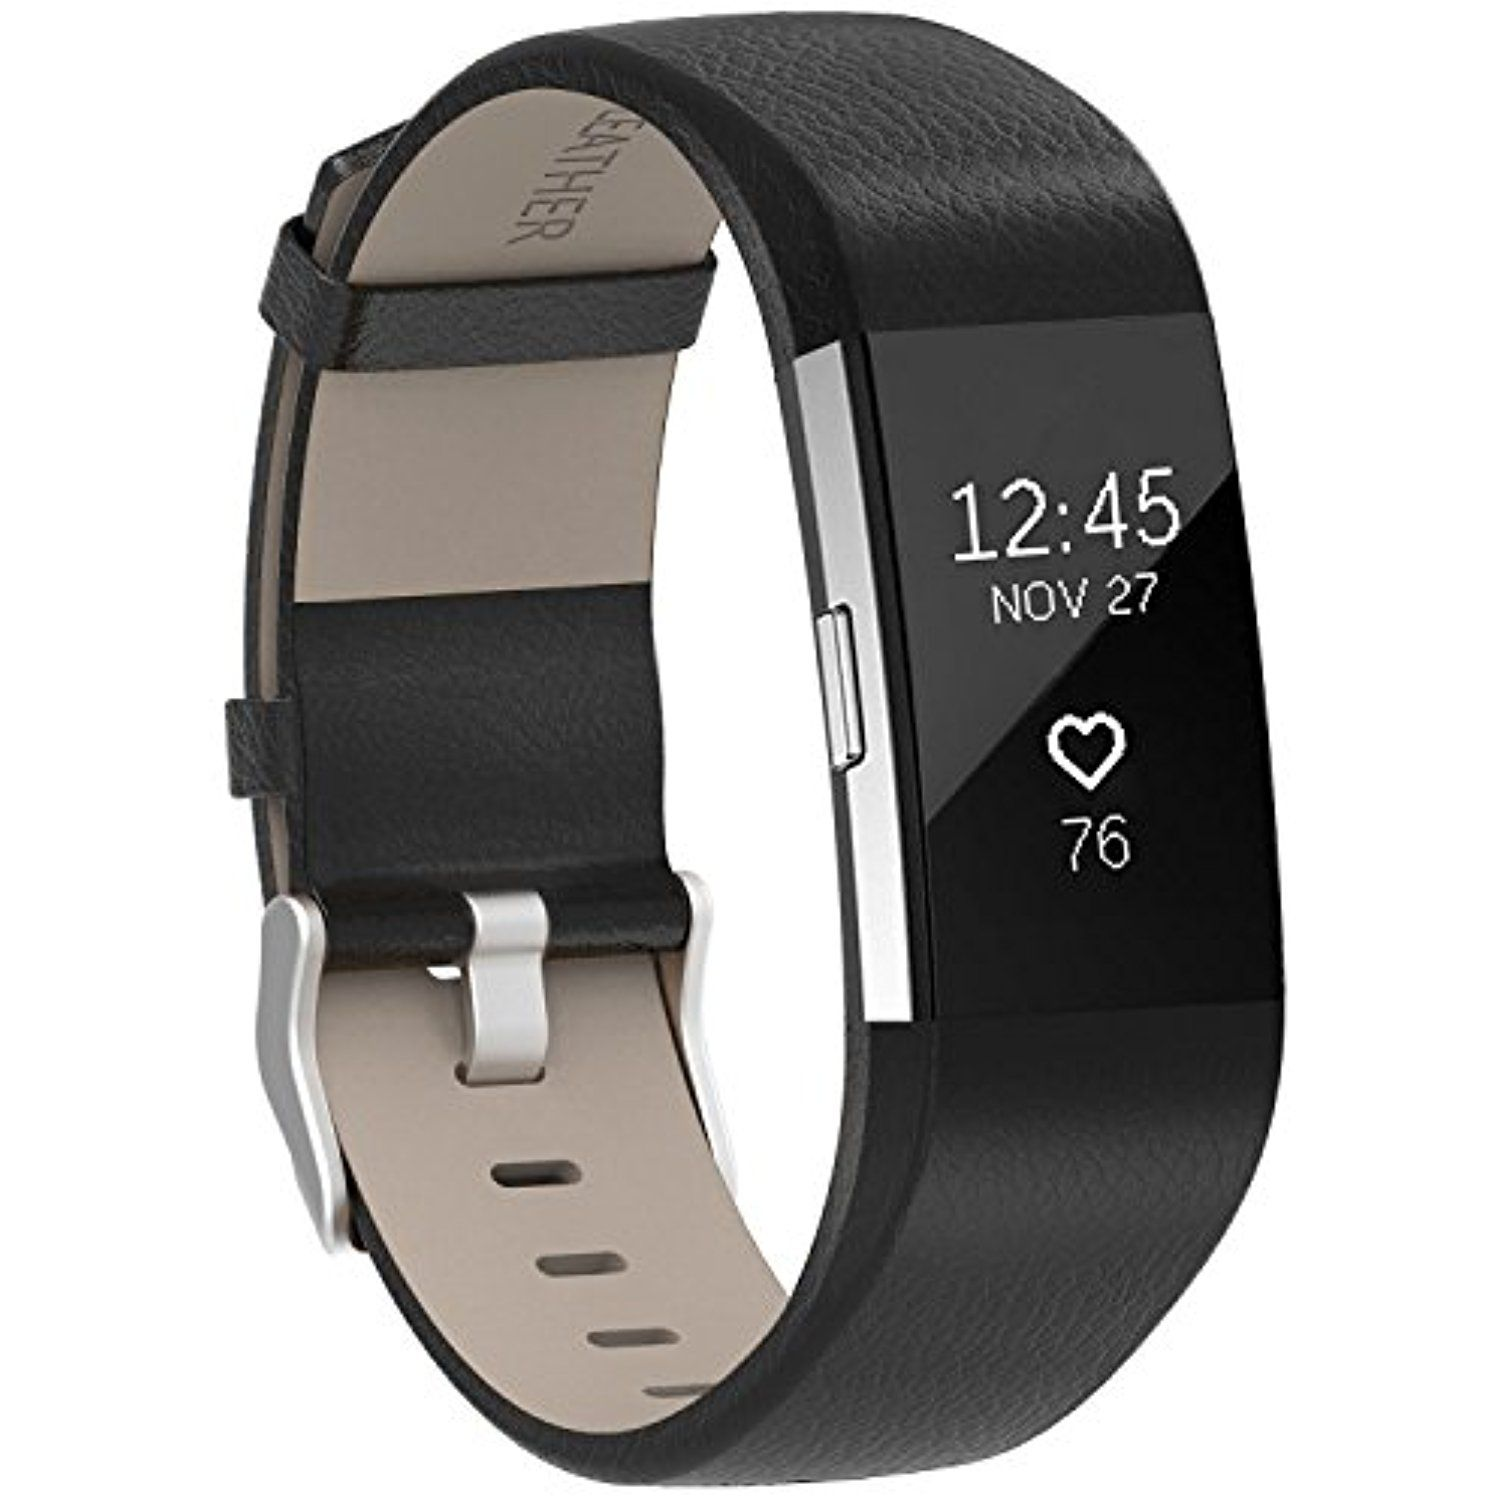 For Fitbit Charge 2 Bands Leather Henoda Replacement Strap For Fitbit Charge 2 Women Men Large Small Check Out This Great Product This Is An A Reloj Puros